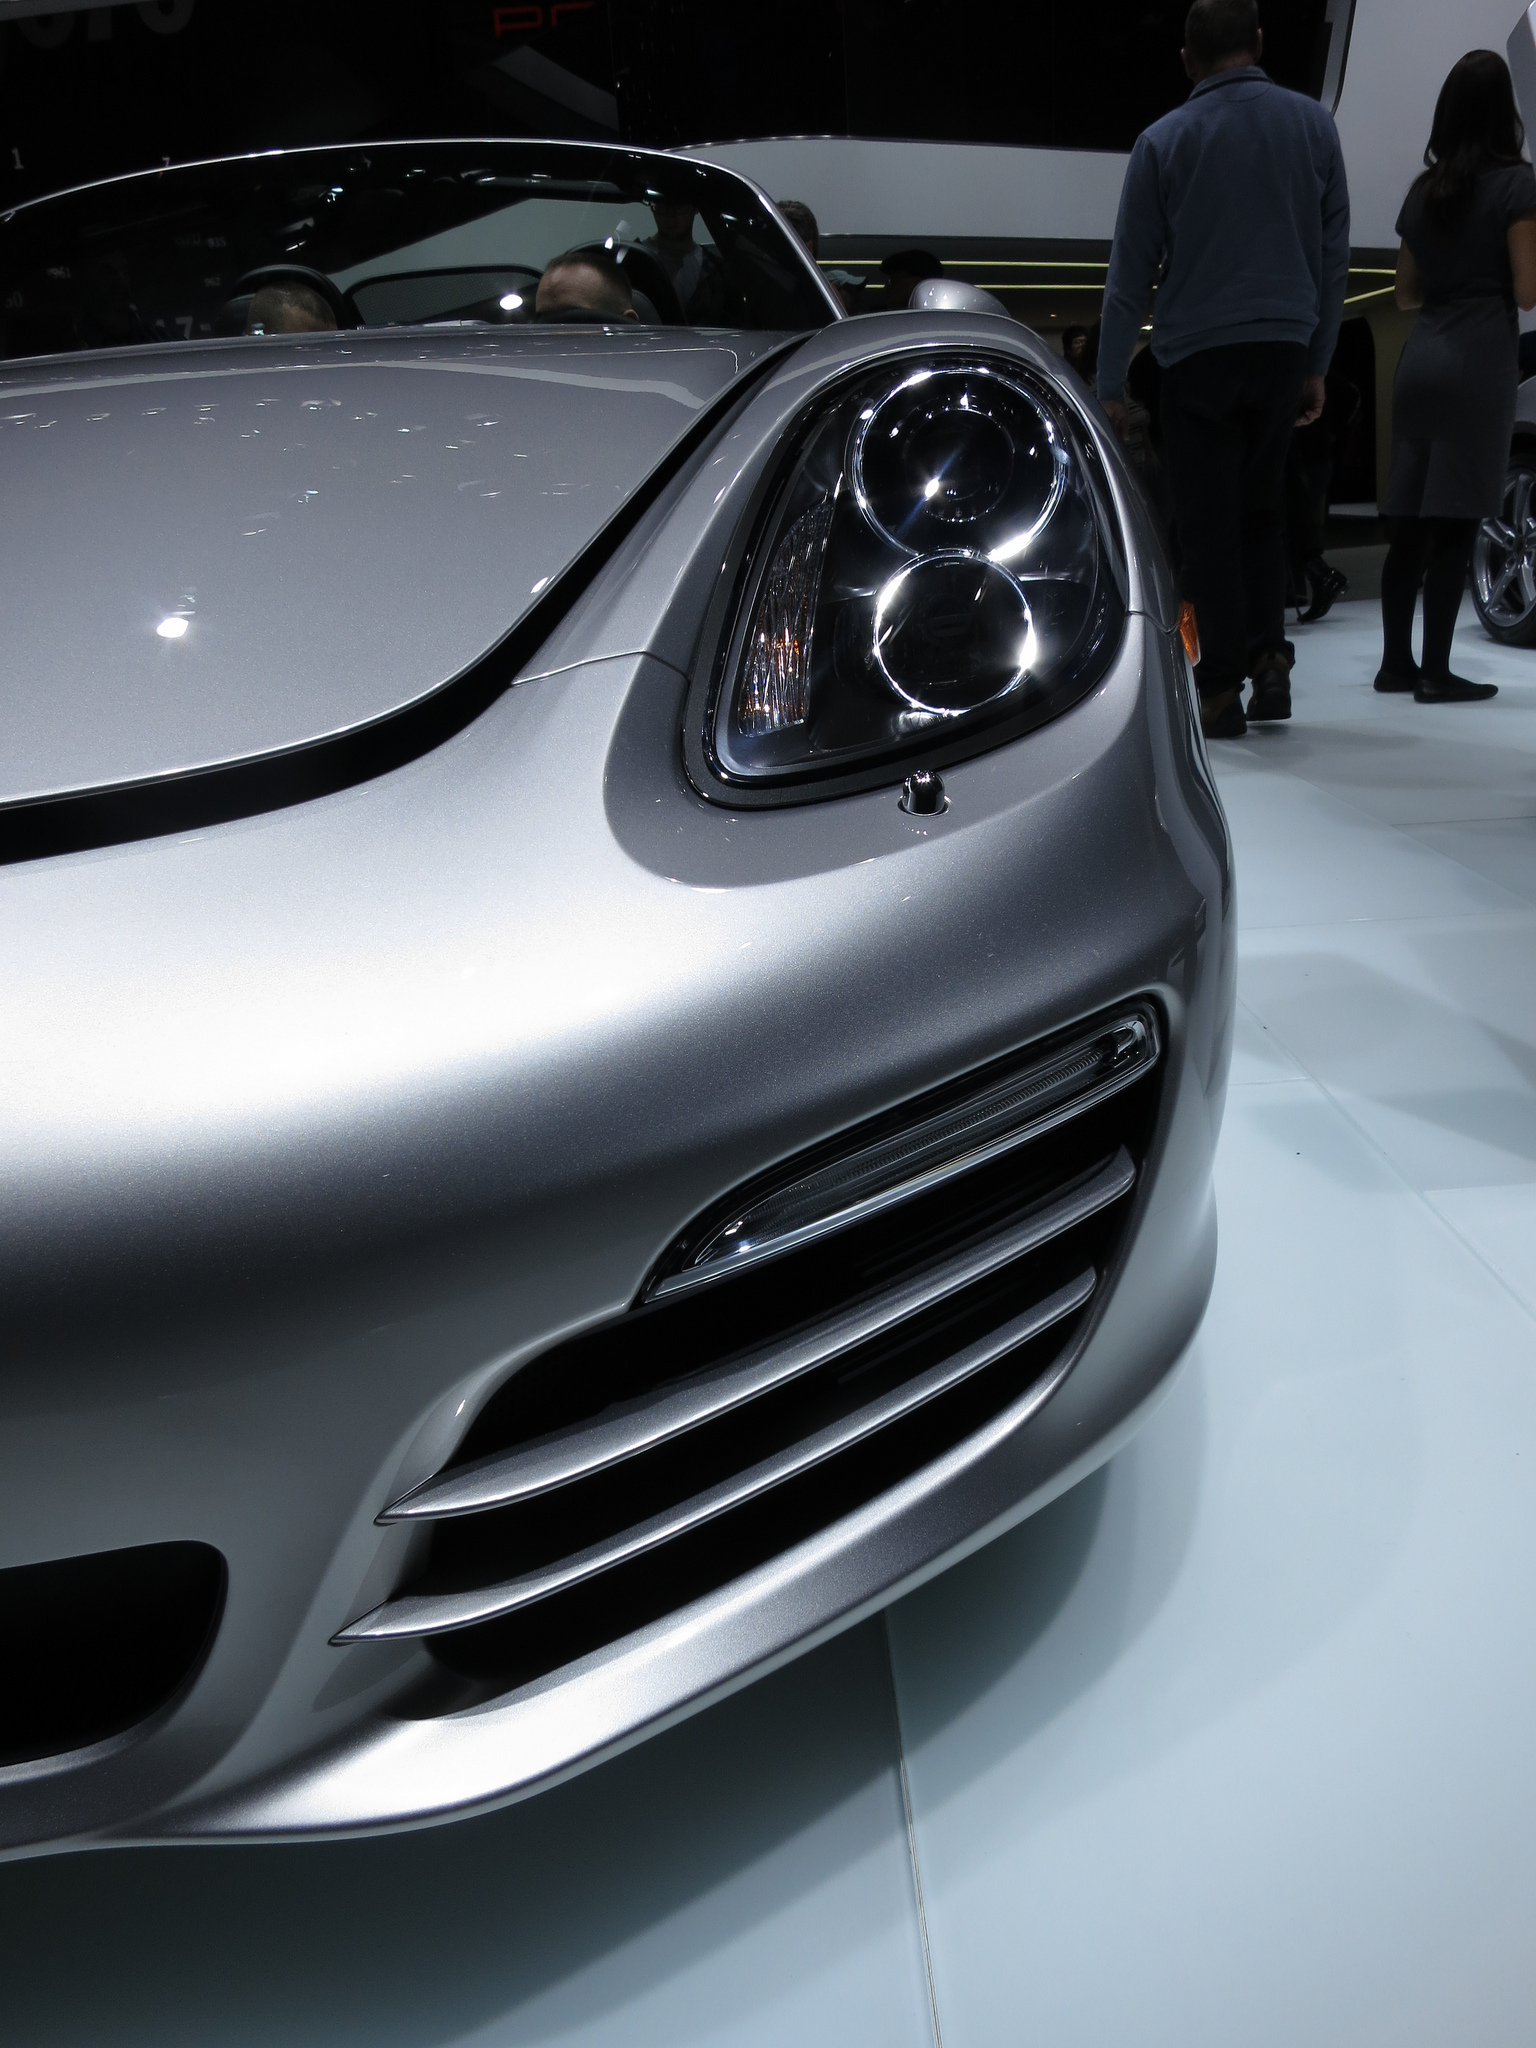 2013 Porsche Cayman at NAIAS 2013 By shaessig